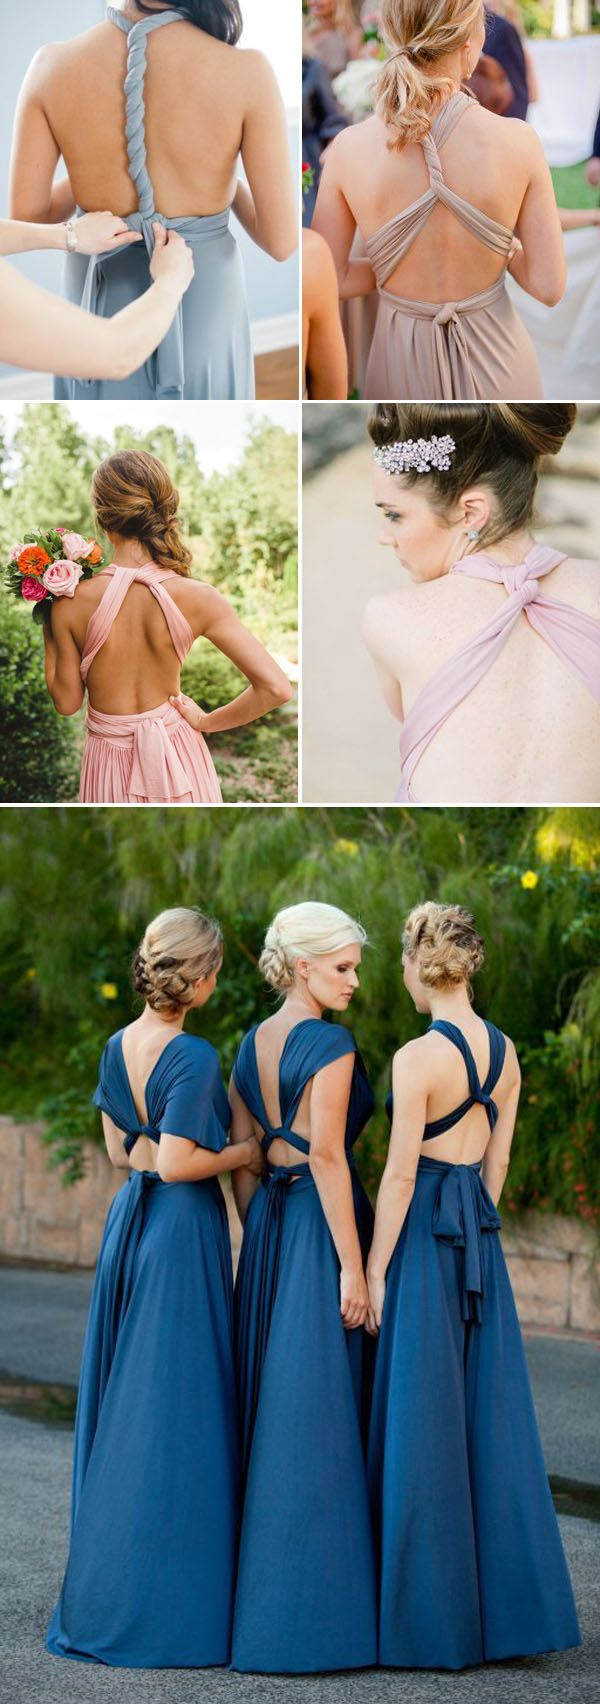 Twist Wrap Bridesmaid Dresses like this idea then each dress can be unique and the girls can wear them again.